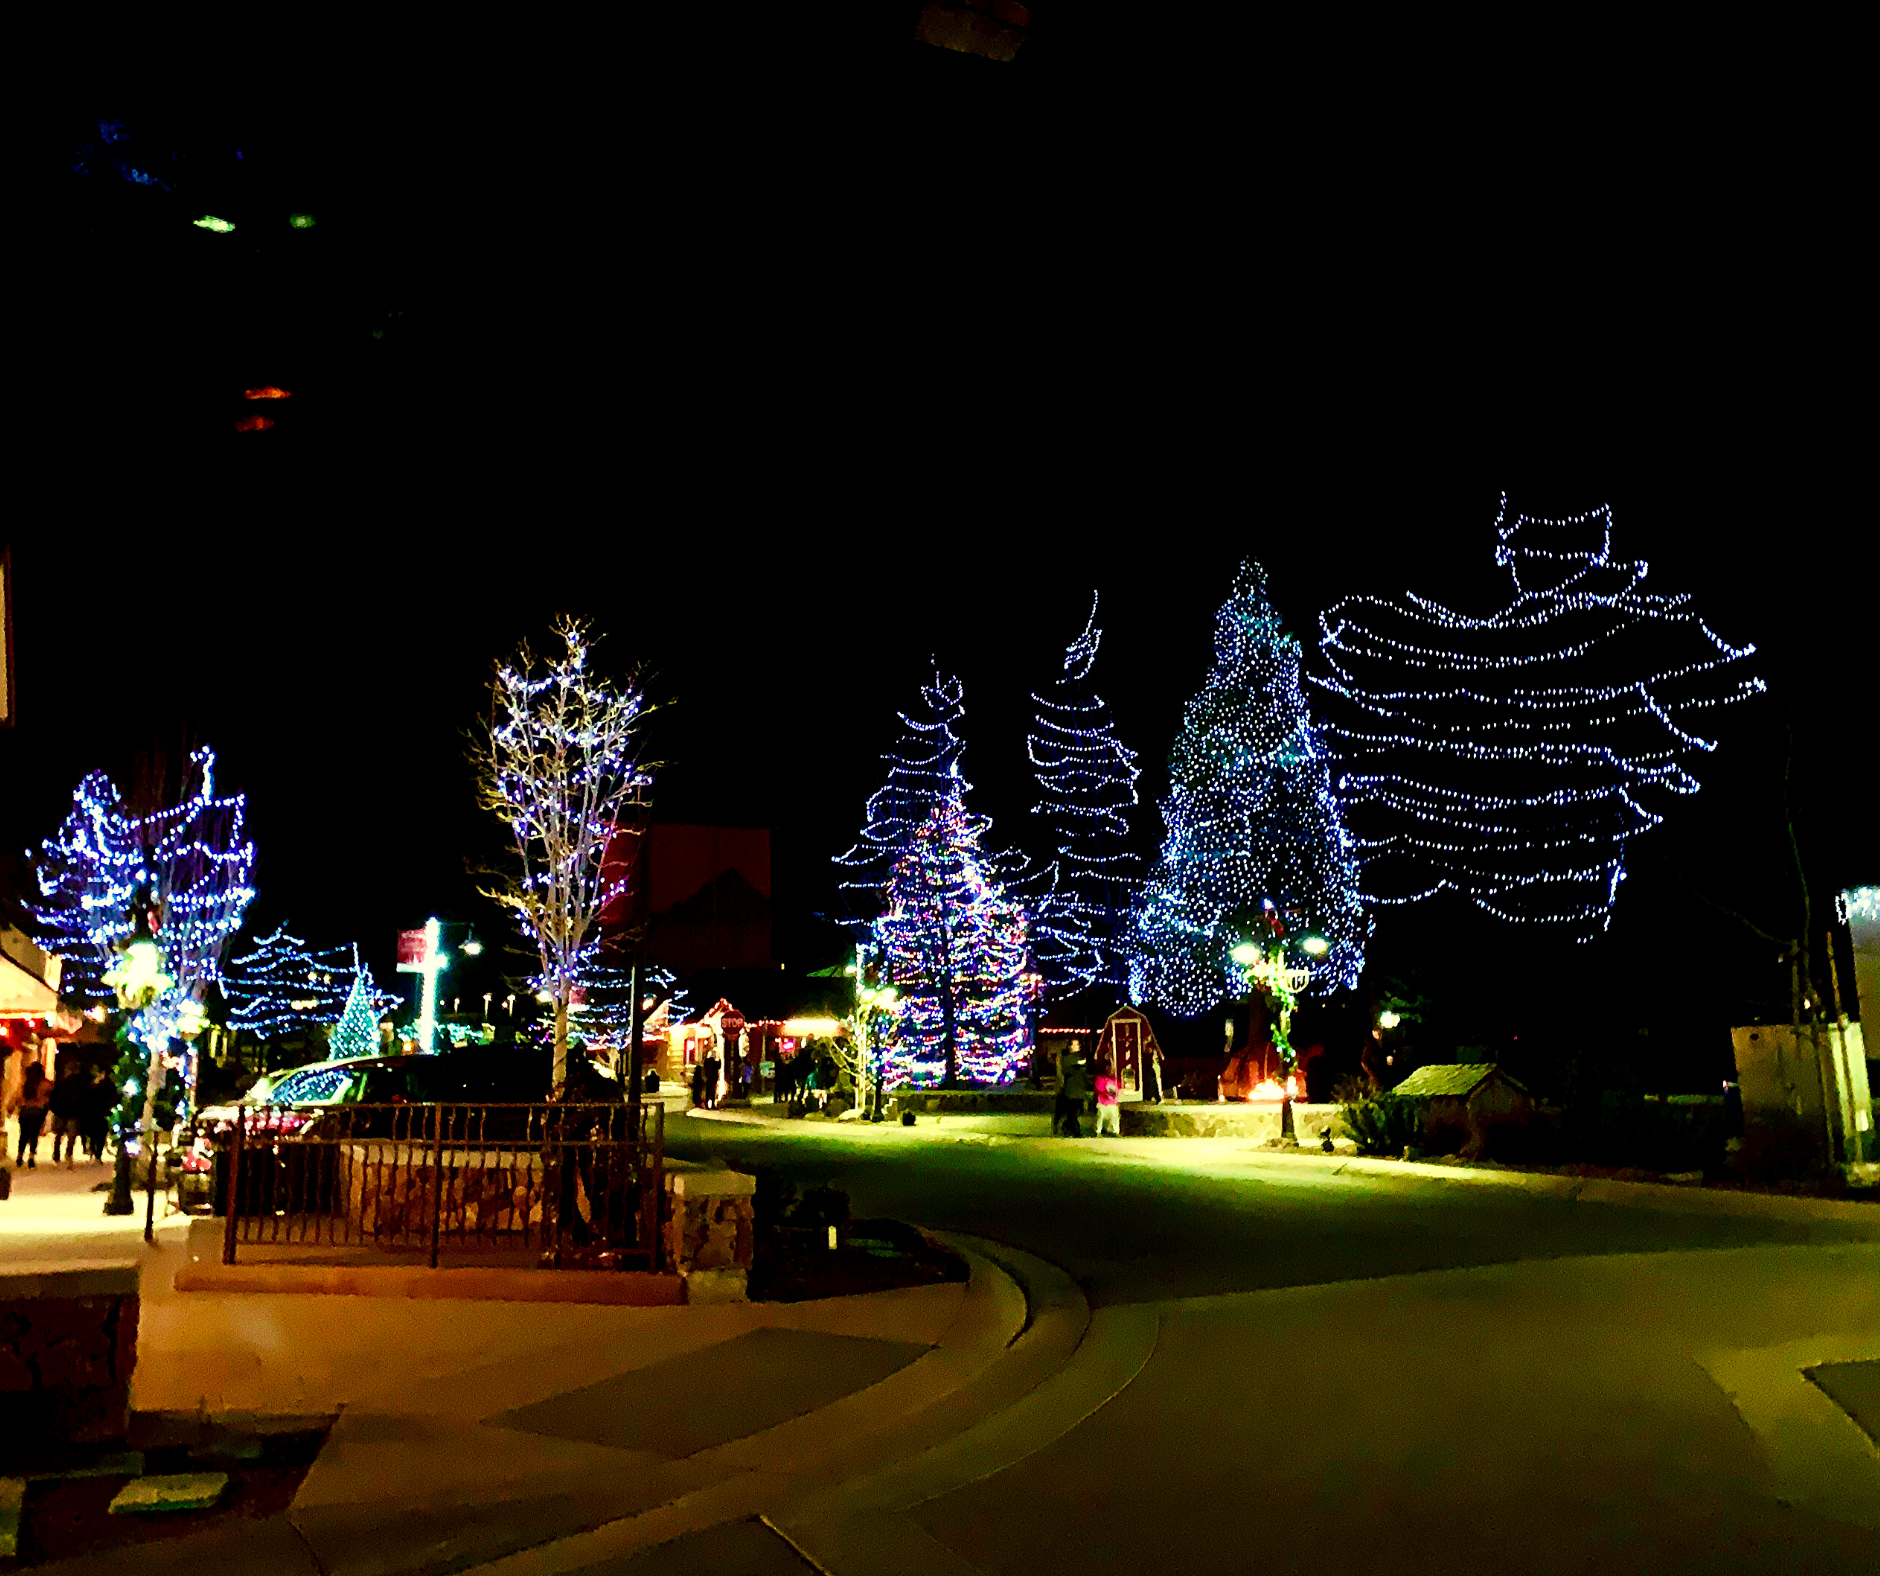 lights on Village Drive in Big bear village